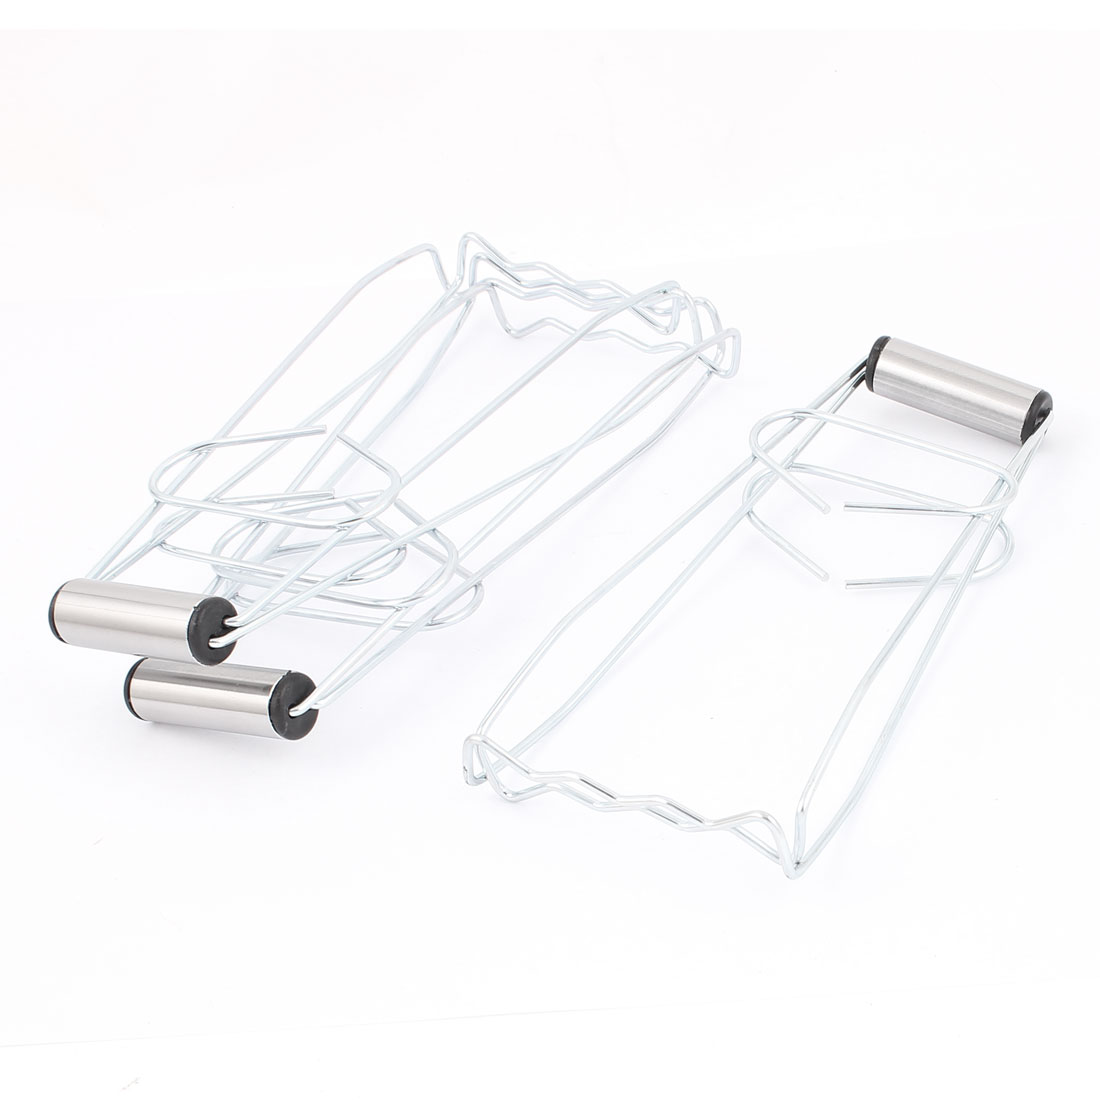 Kitchen Metal Anti-Scald Plate Bowl Dish Pot Holder Carrier Clamp Clip 3PCS